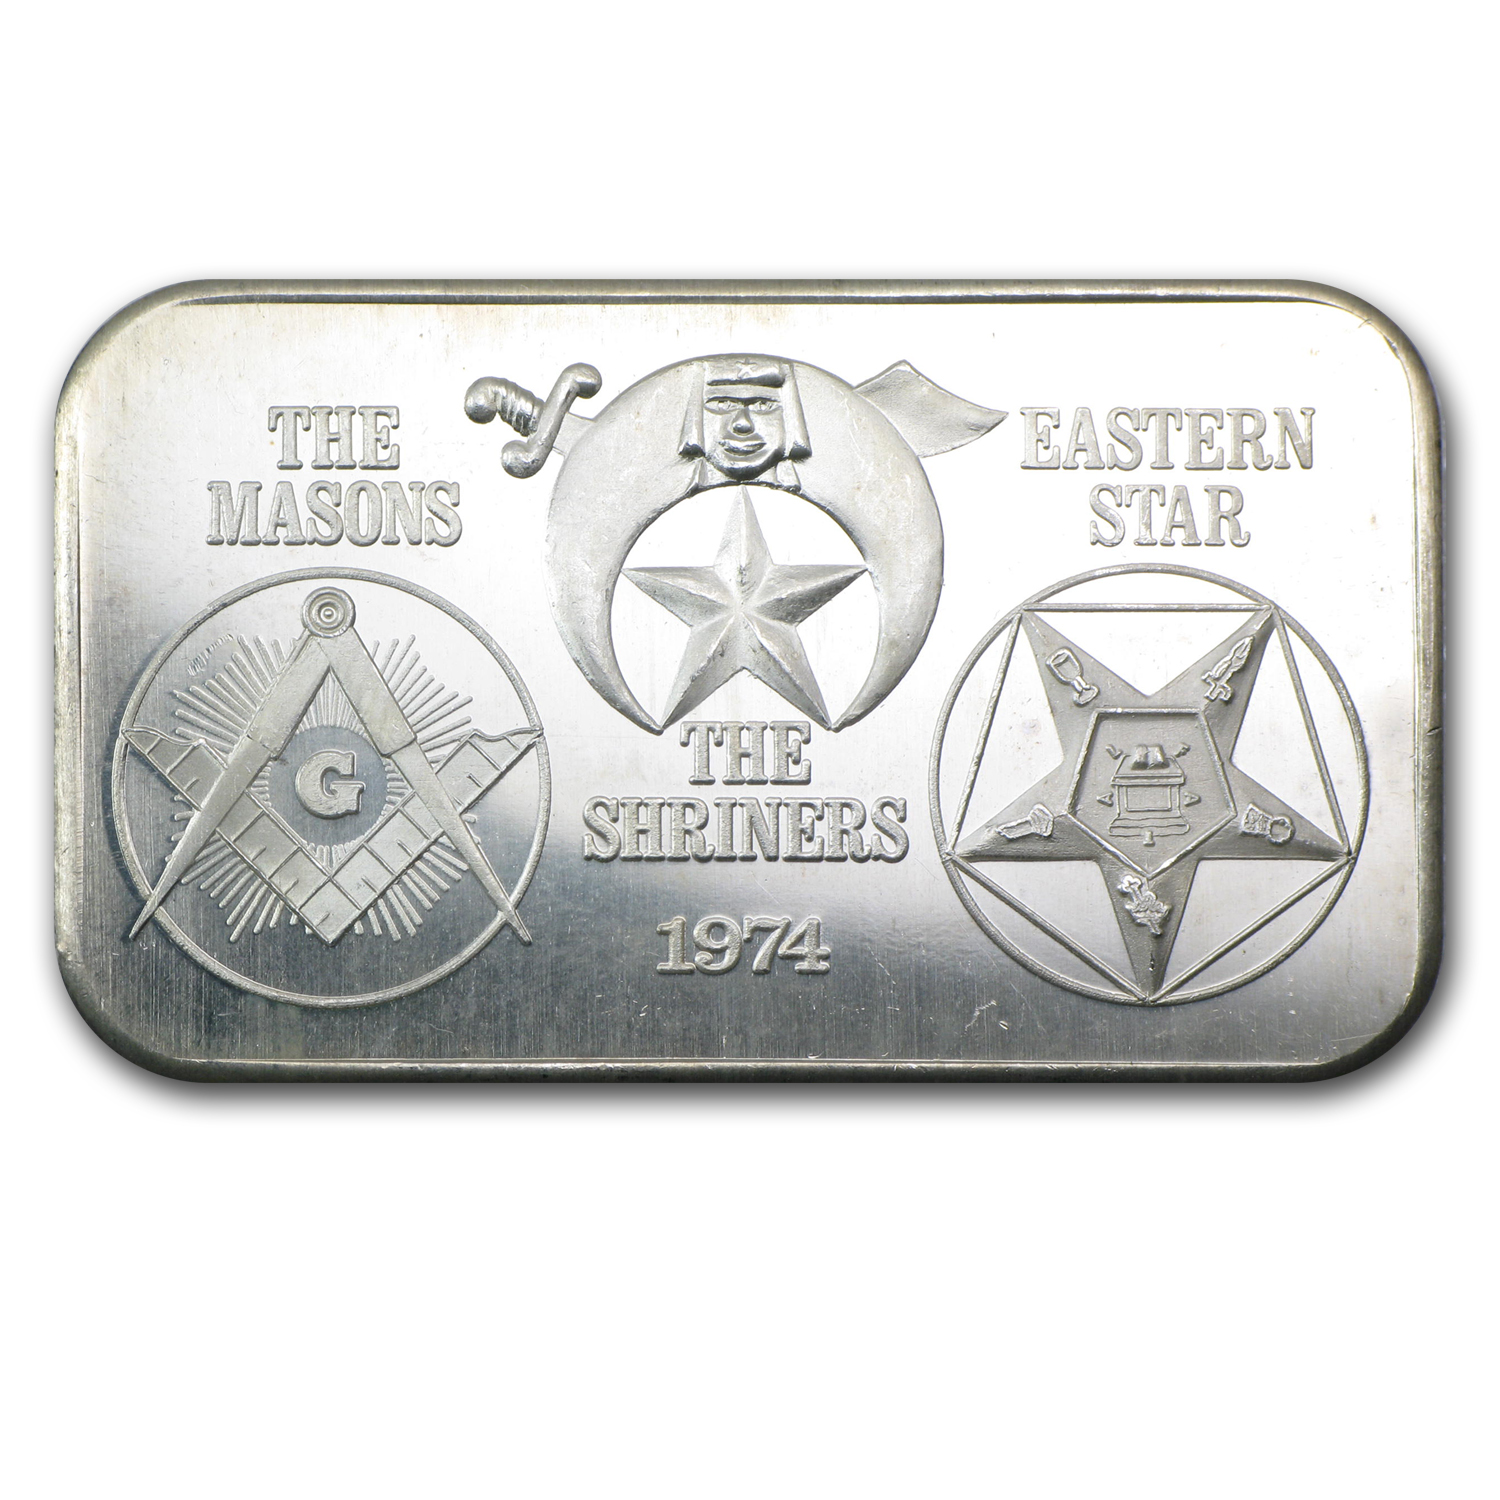 1 oz Silver Bar - Masons/Shriners/Eastern Star